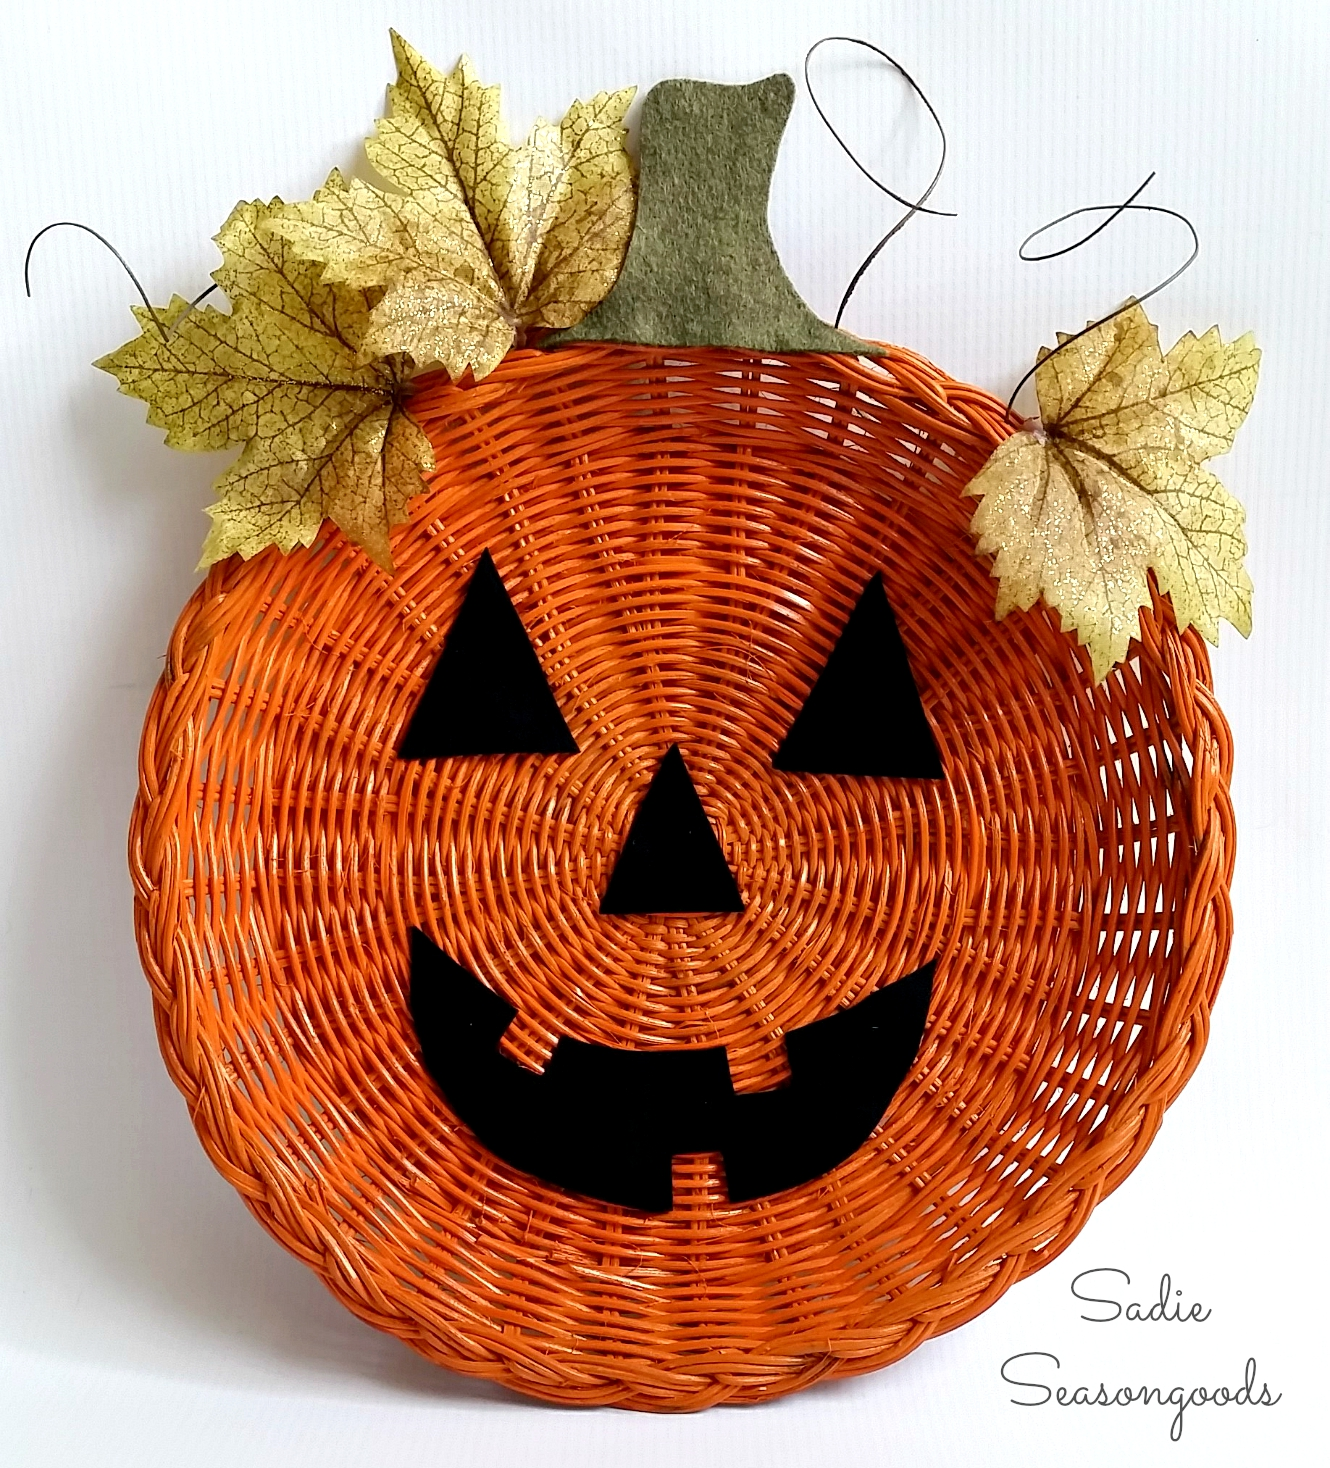 Wicker rattan charger paper plate holder pumpkin jack o lantern door hanger halloween sadie seasongoods